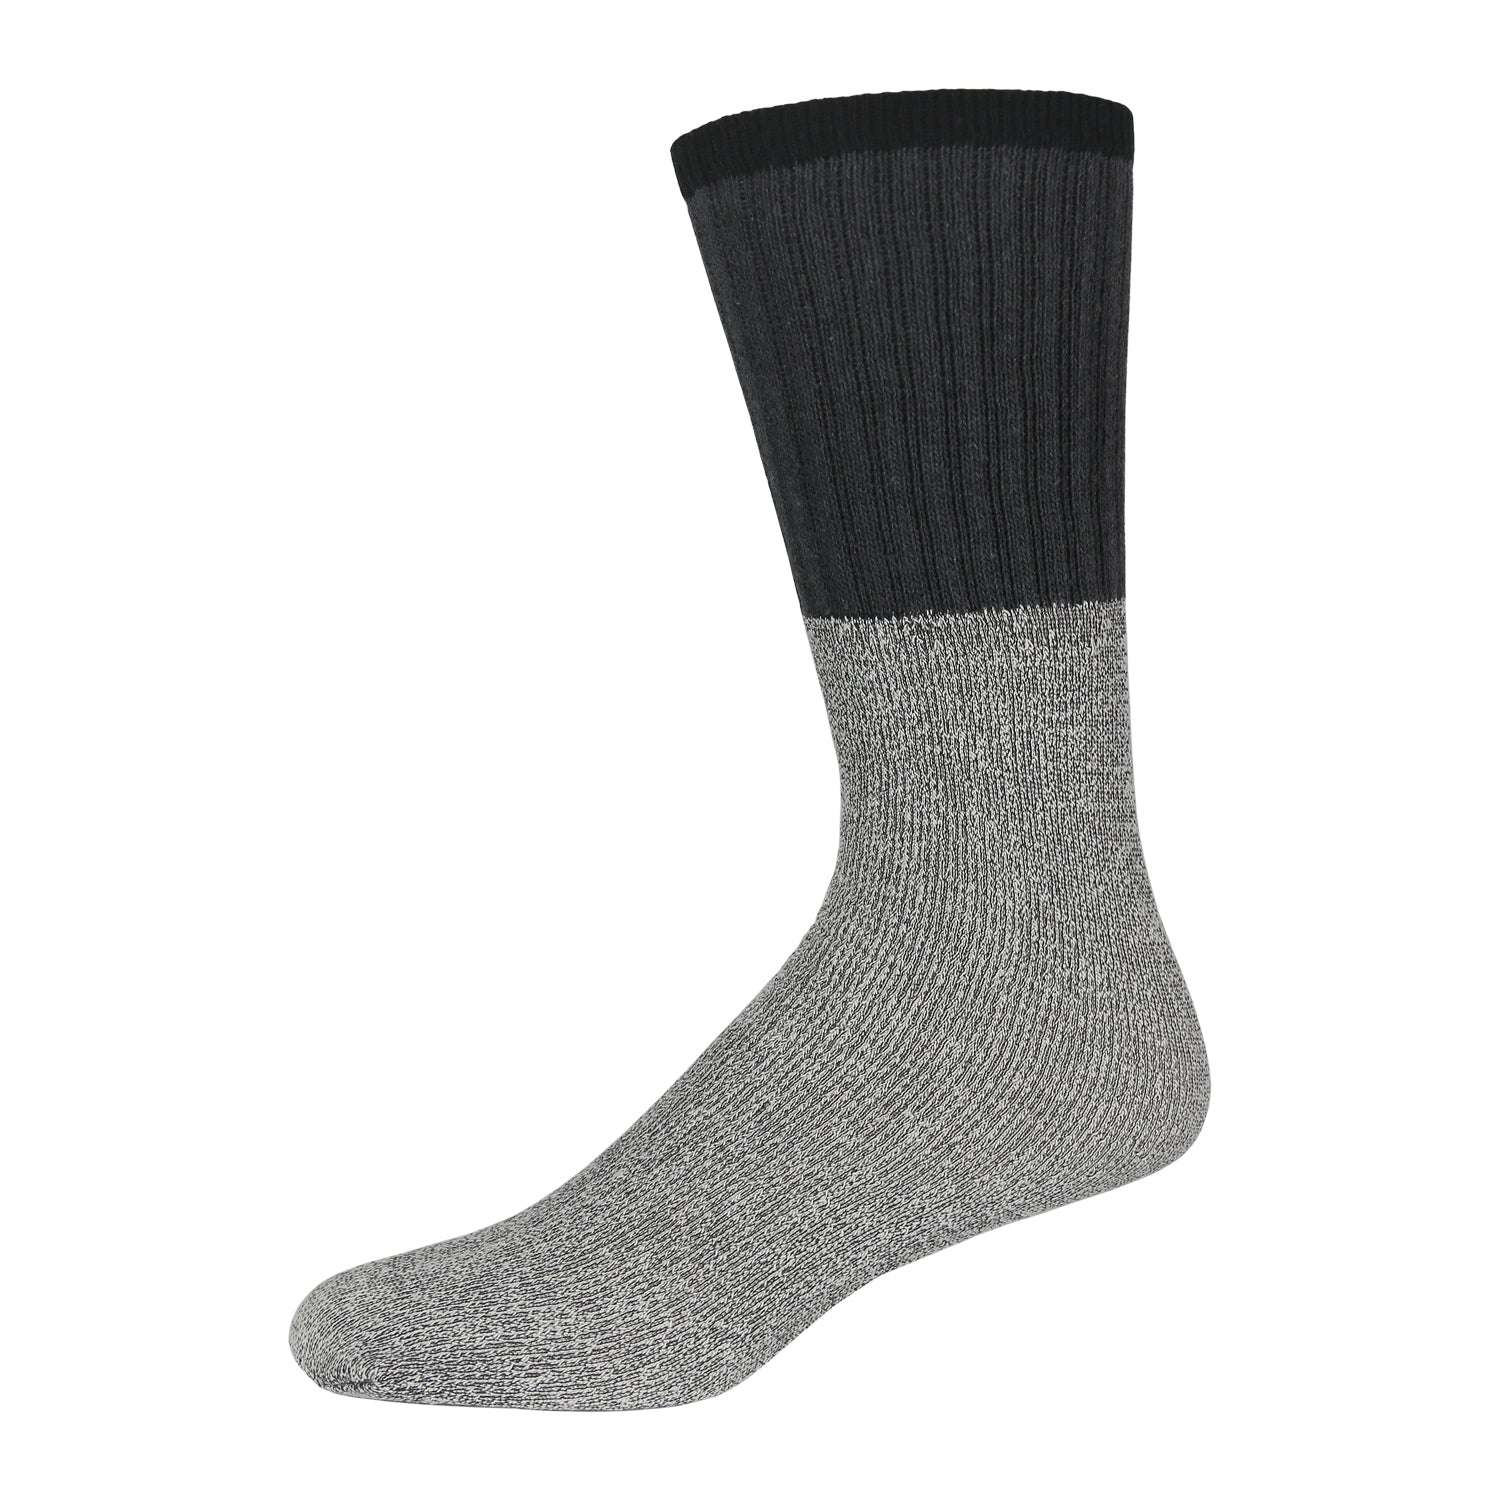 Men's Cotton Blend  Heather Grey Tube Sock For Hiking With Ribbed Dark Grey Top And Black Elastic